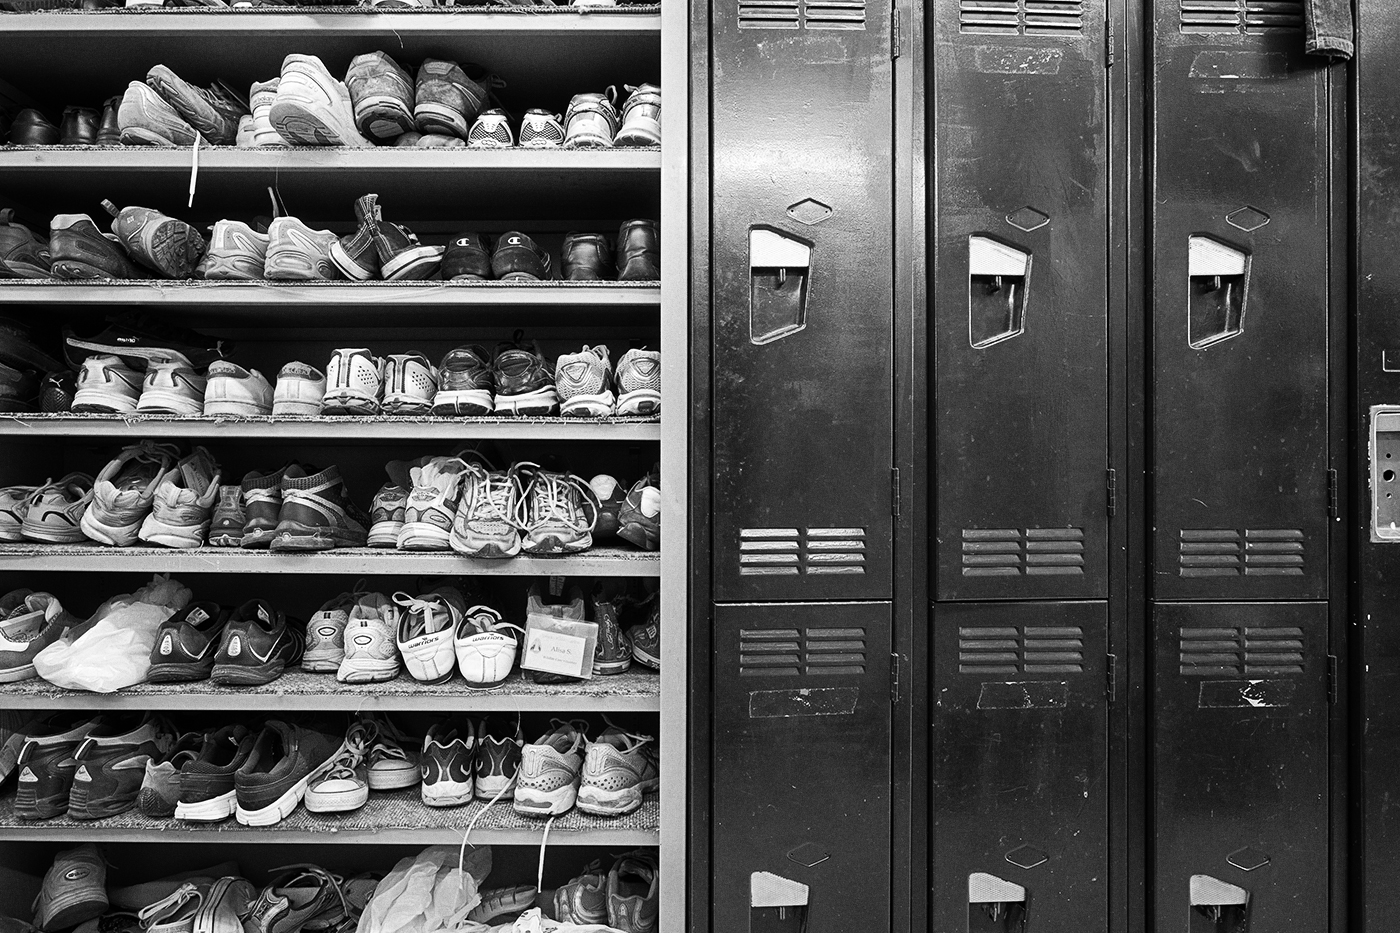 Lockers and racks of shoes at the Toronto Wildlife Centre